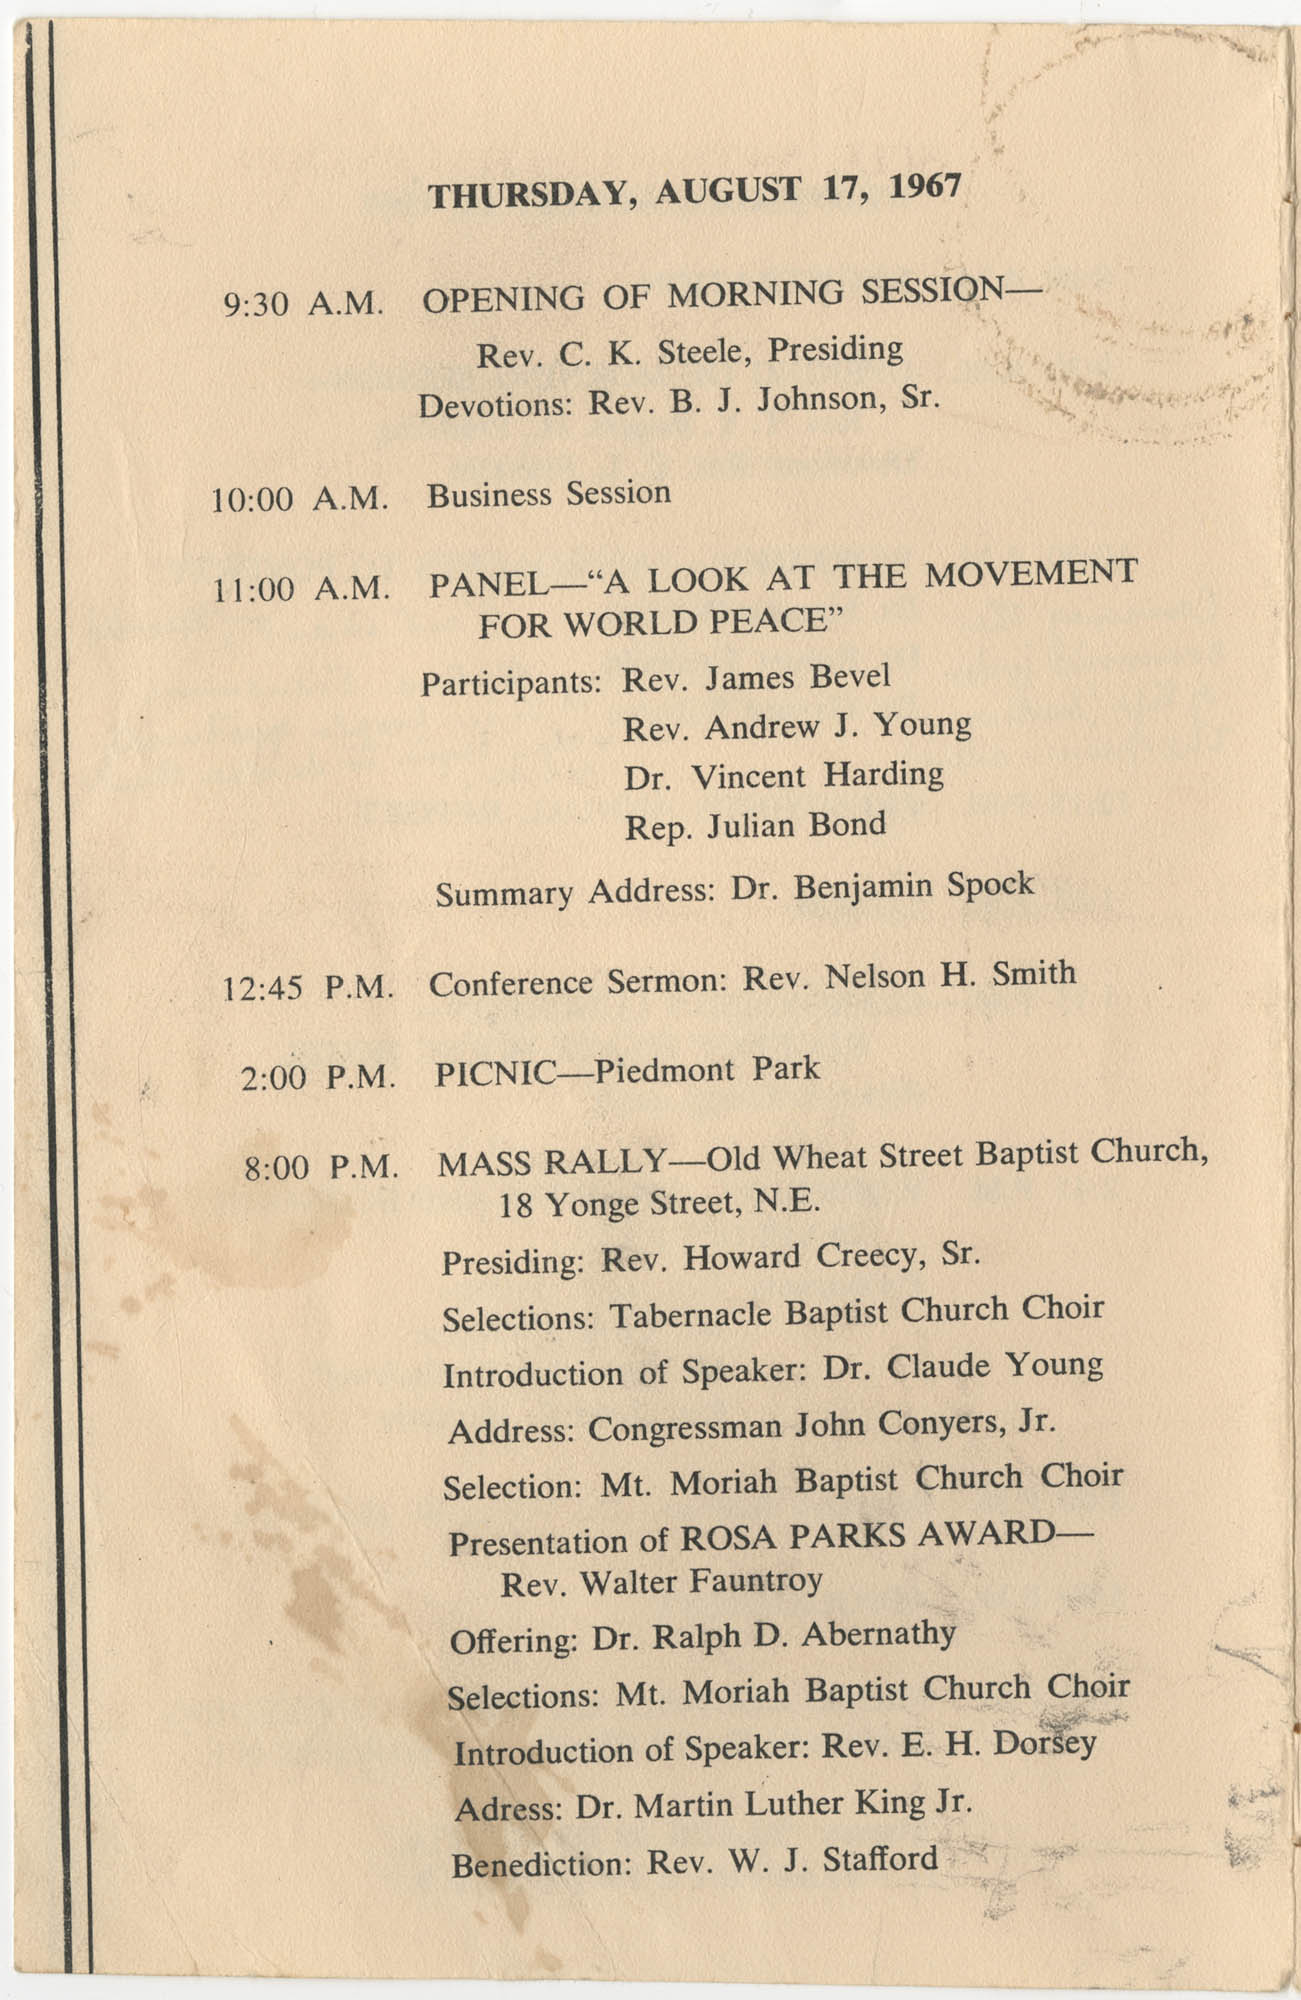 Southern Christian Leadership Conference, Tenth Anniversary Convention Program, Page 8